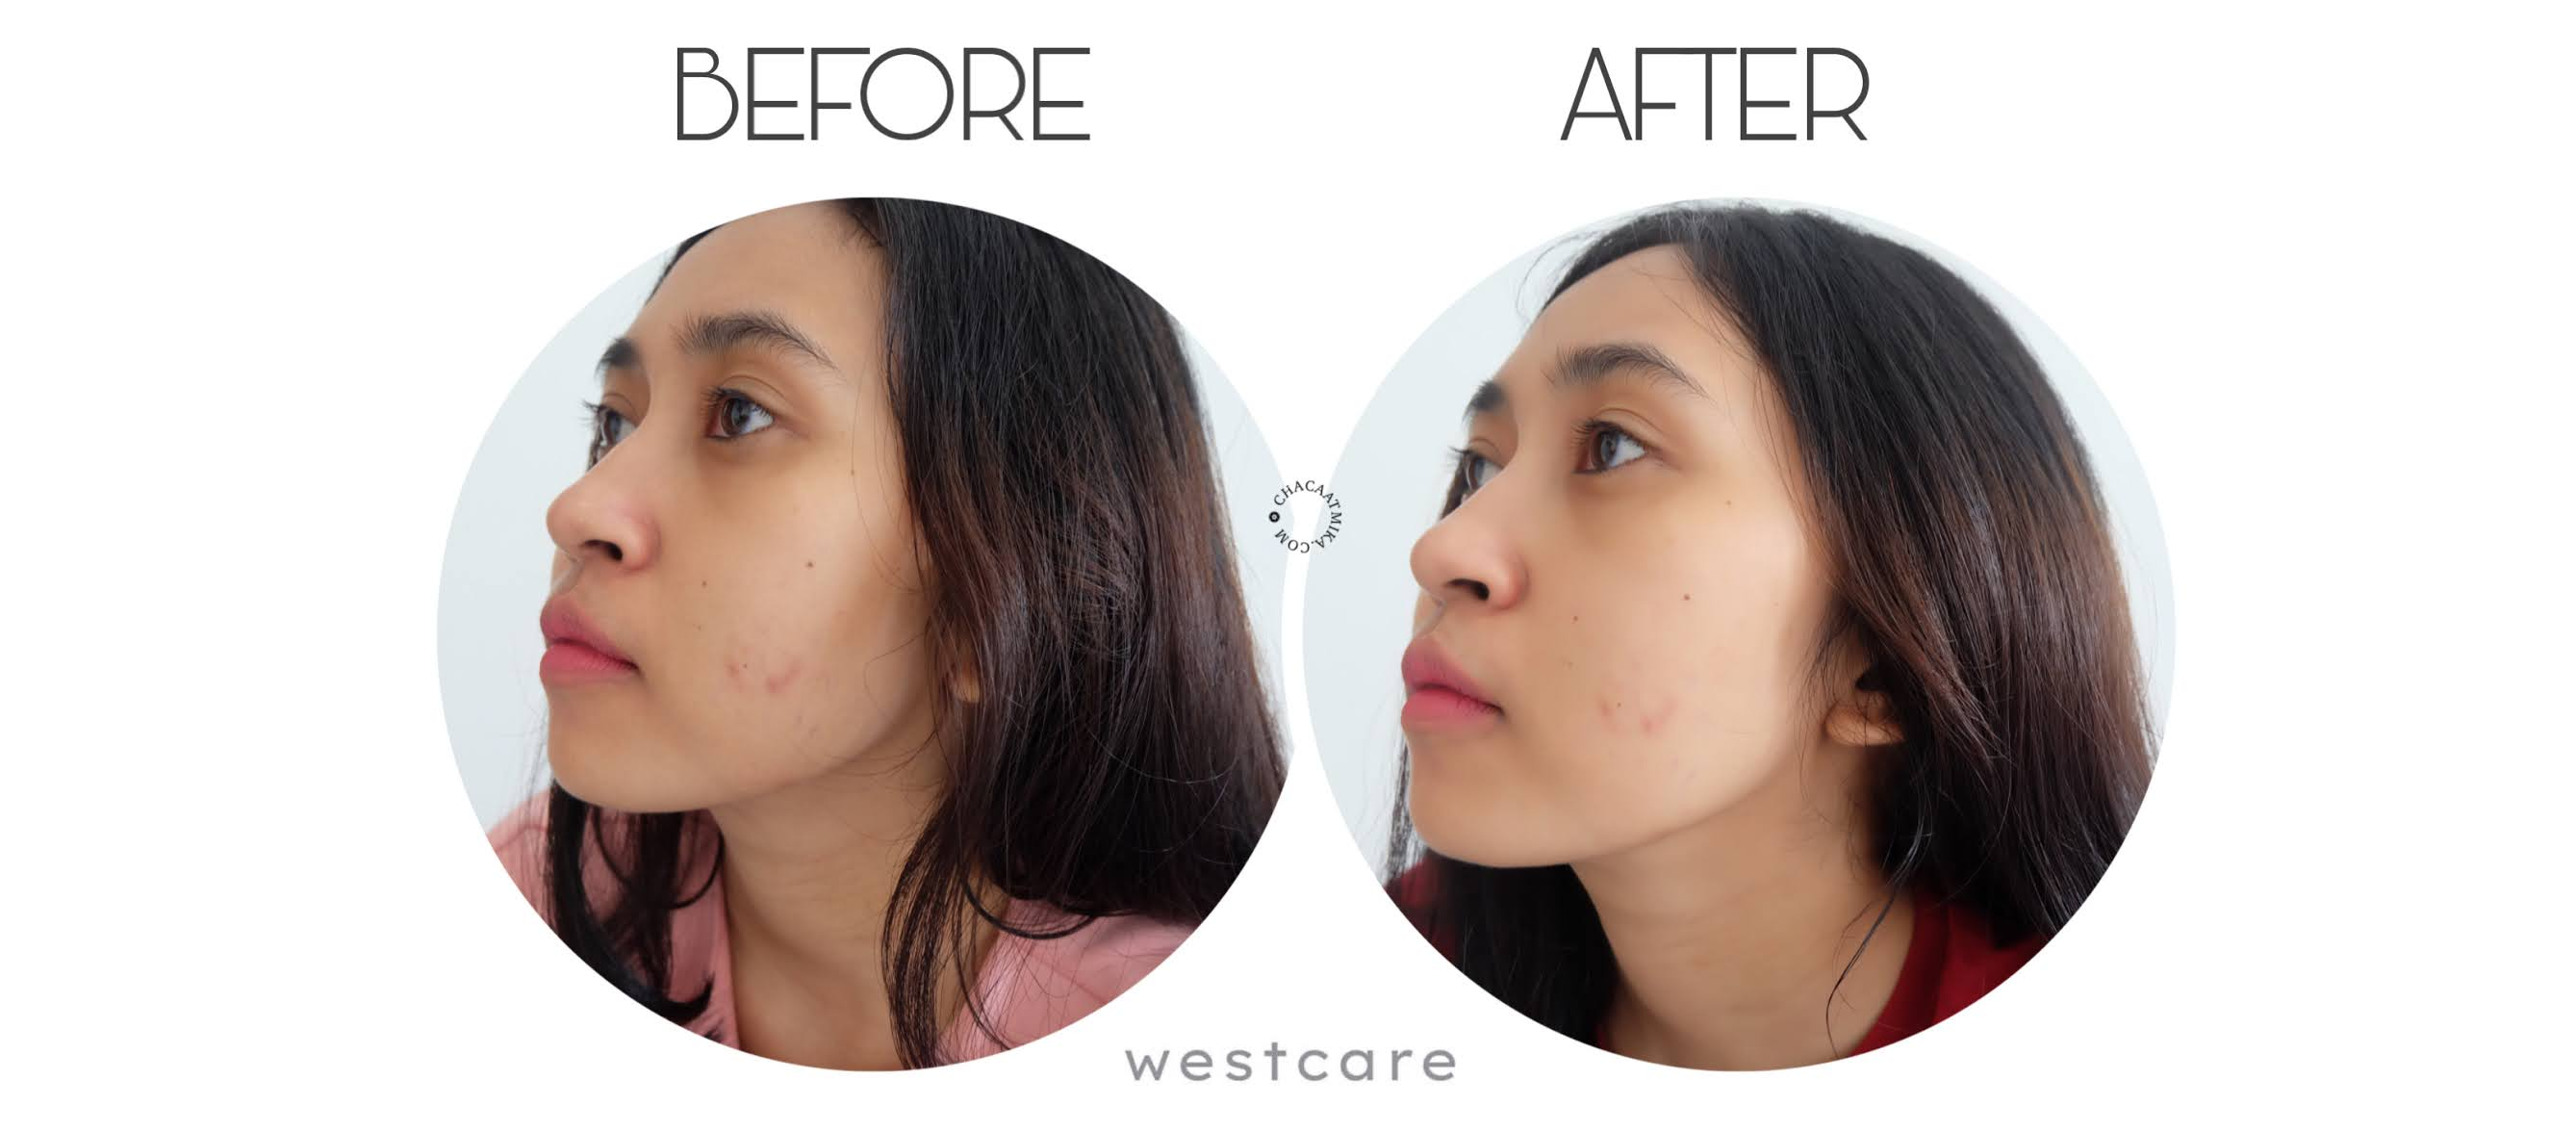 Before After Pemakaian Westcare Skincare